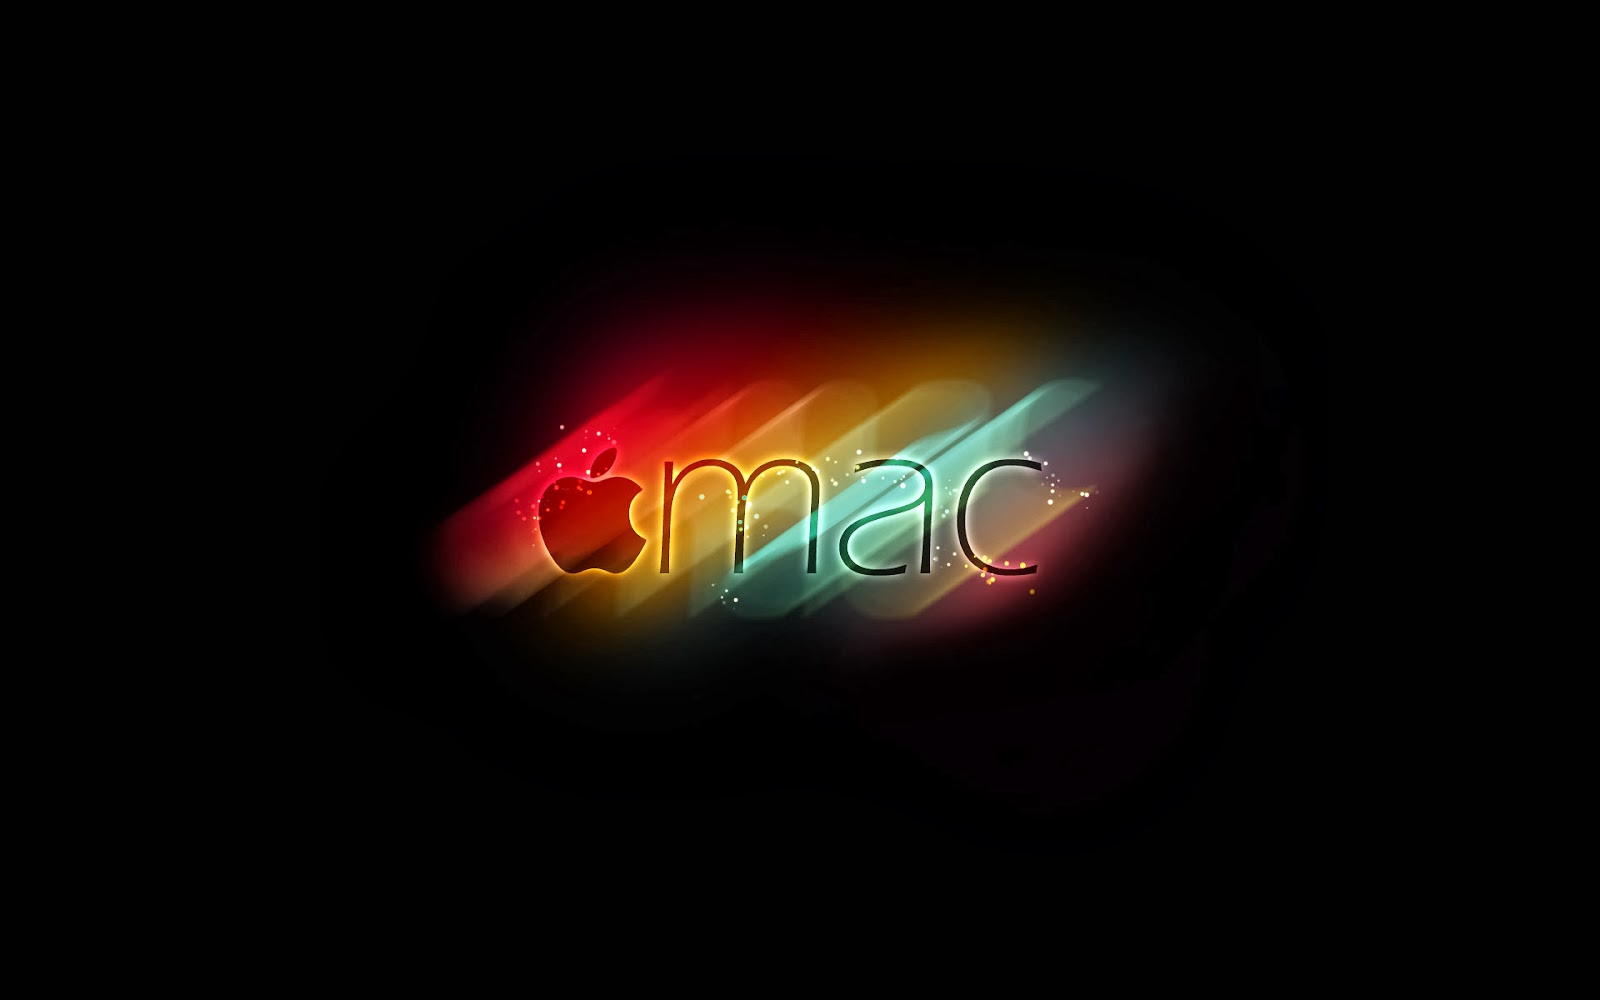 Mac Pictures HD wallpapers